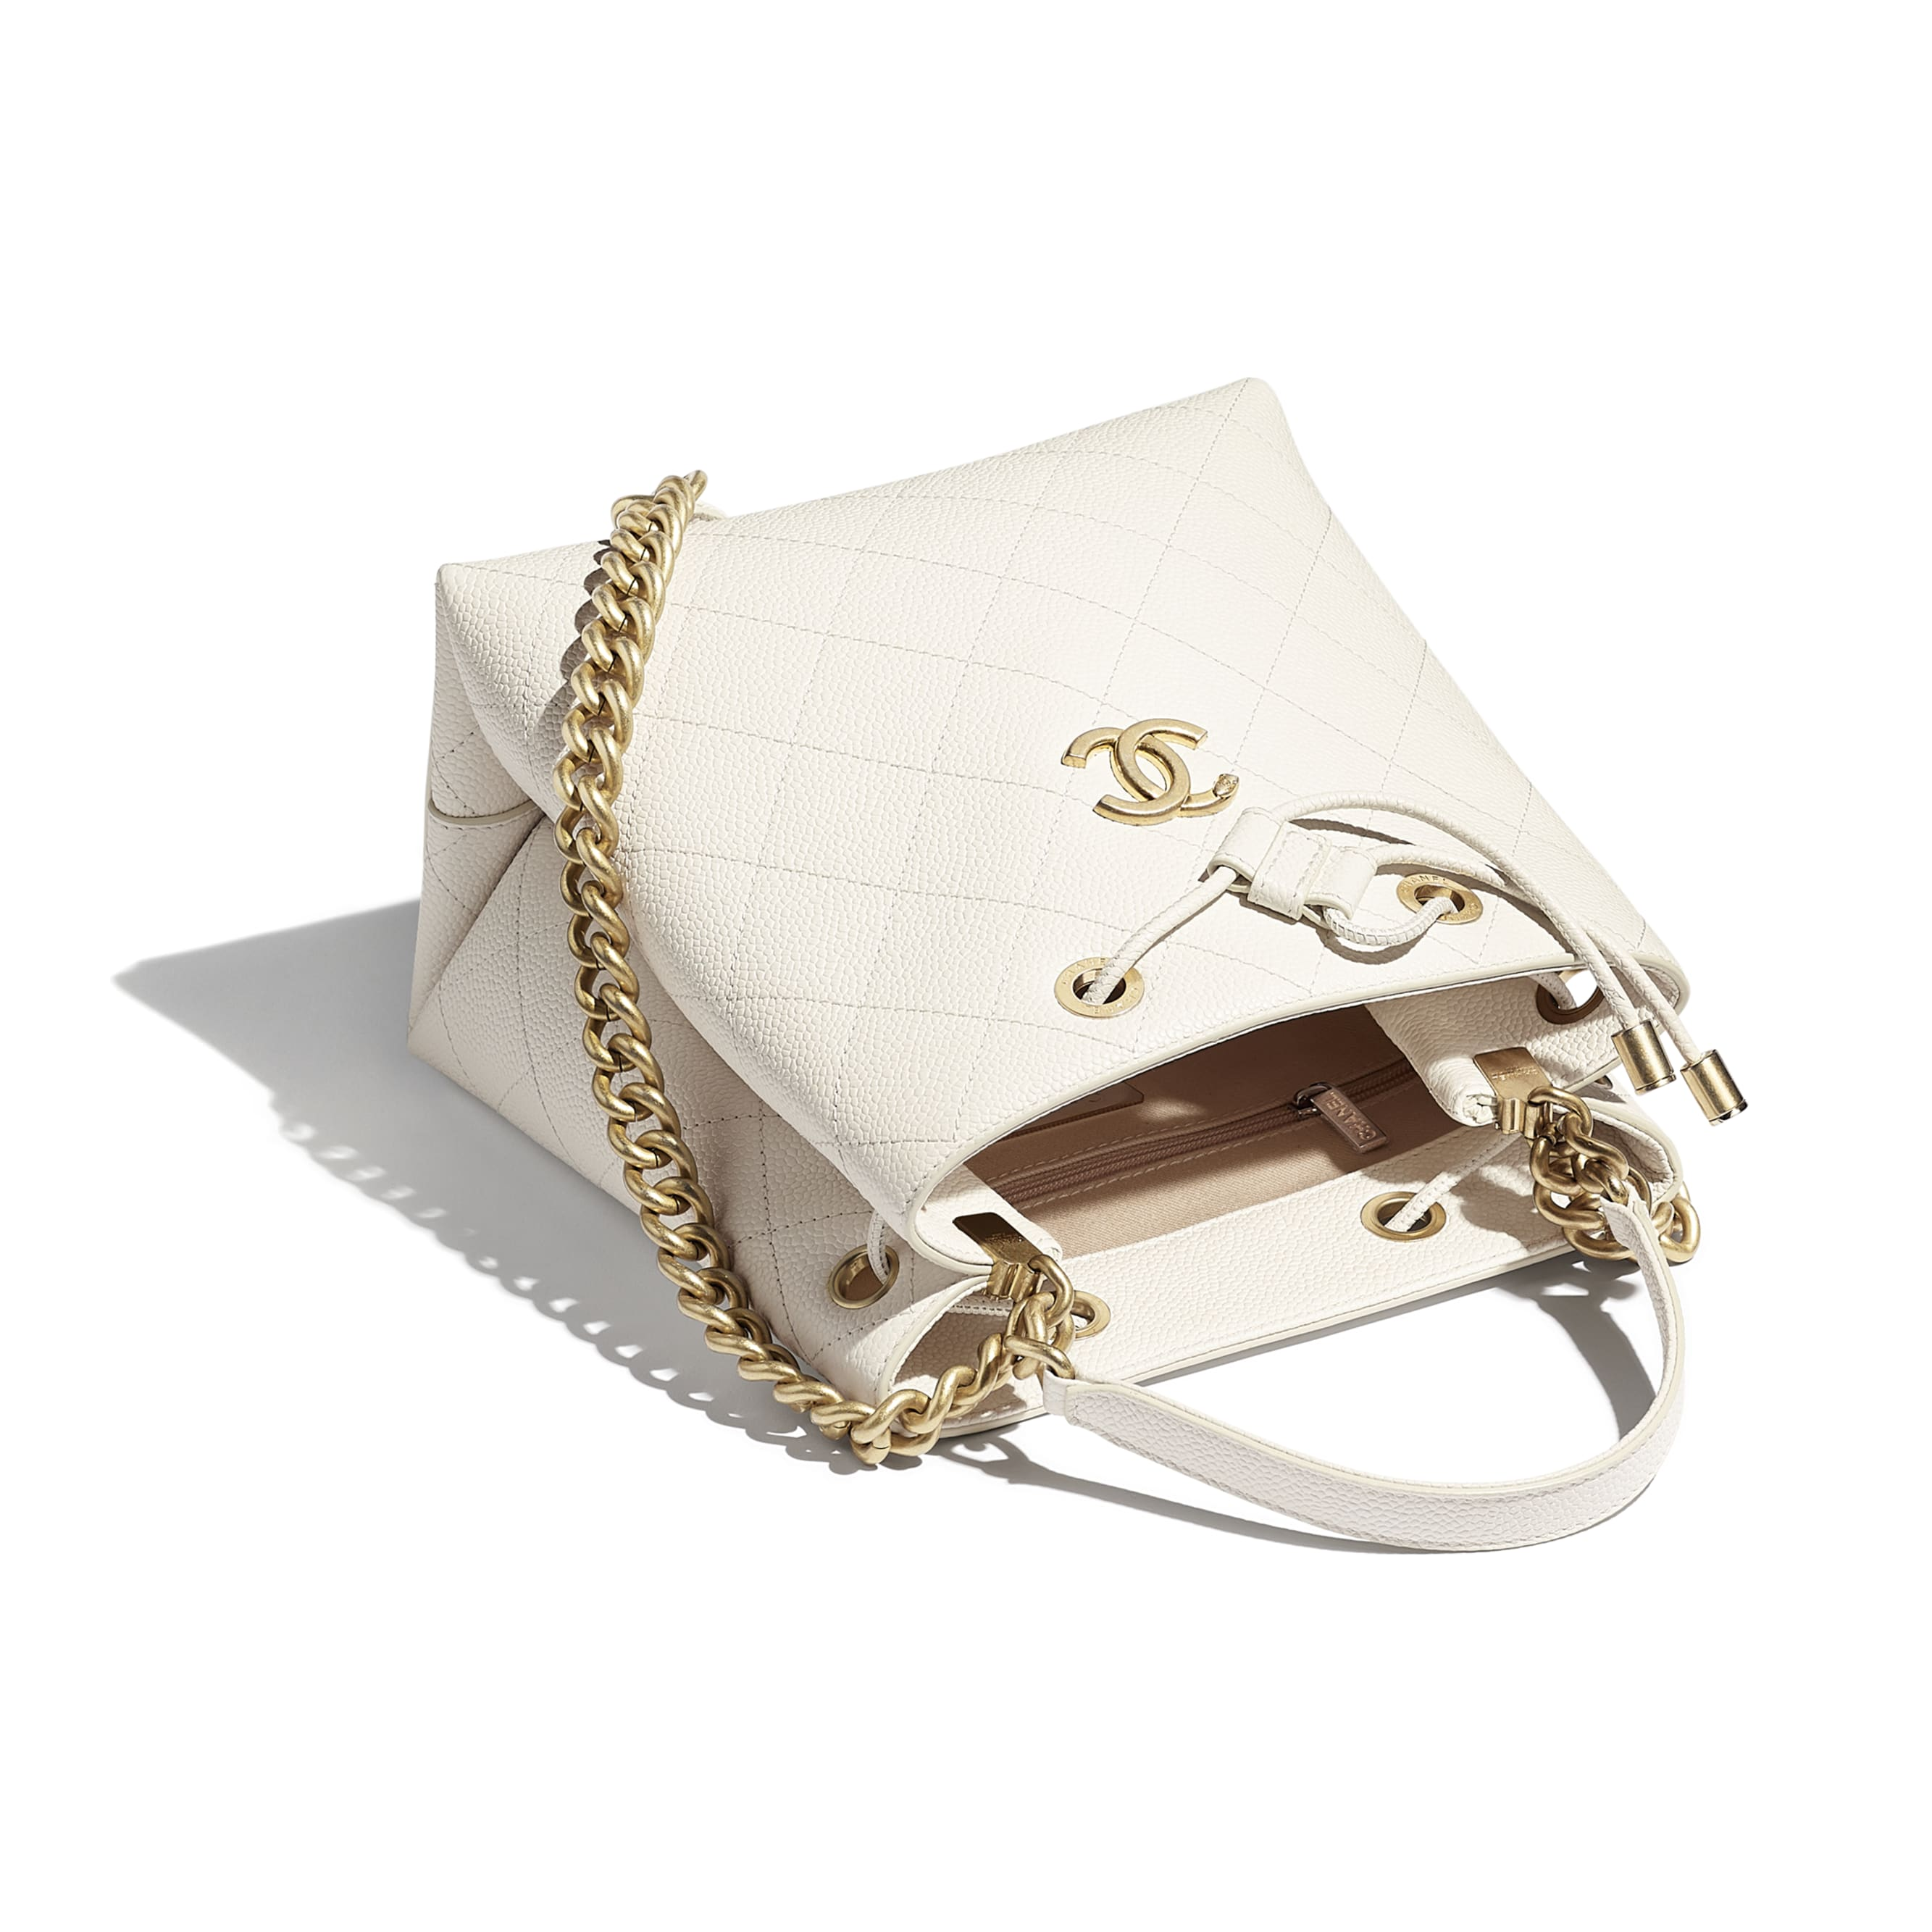 Drawstring Bag - White - Grained Calfskin & Gold-Tone Metal - CHANEL - Other view - see standard sized version